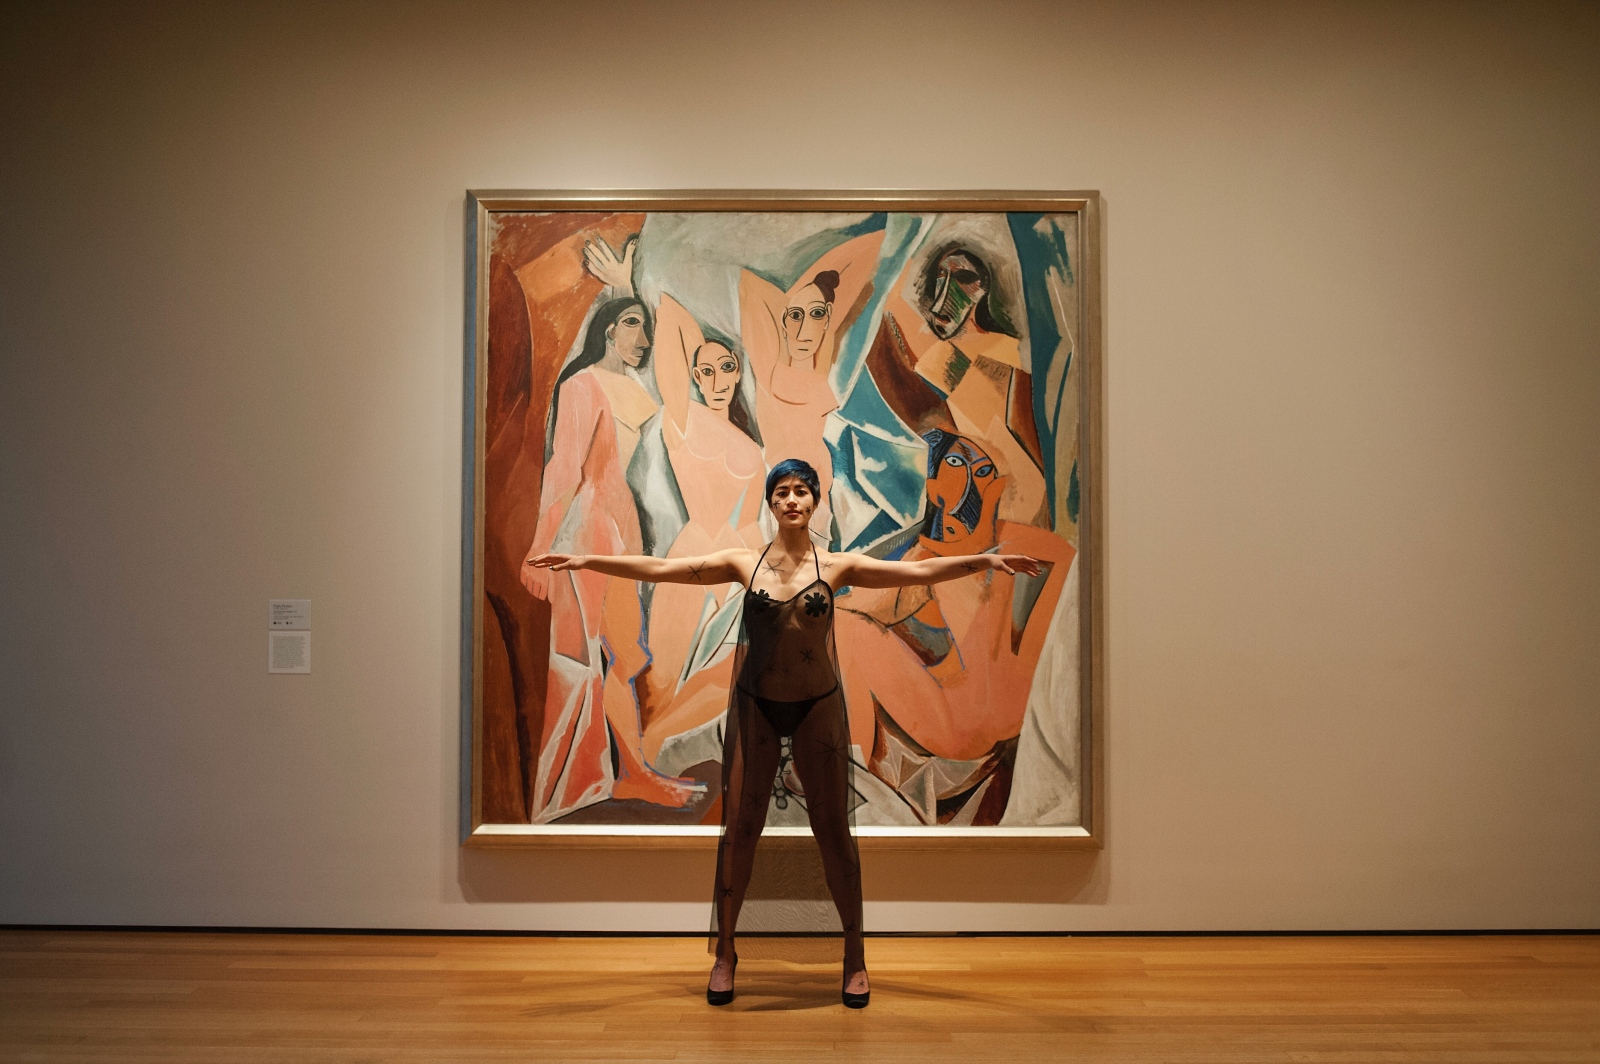 Emma Sulkowicz photographed in protest alongside Pablo Picasso's Les Demoiselles d'Avignon at the Museum of Modern Art